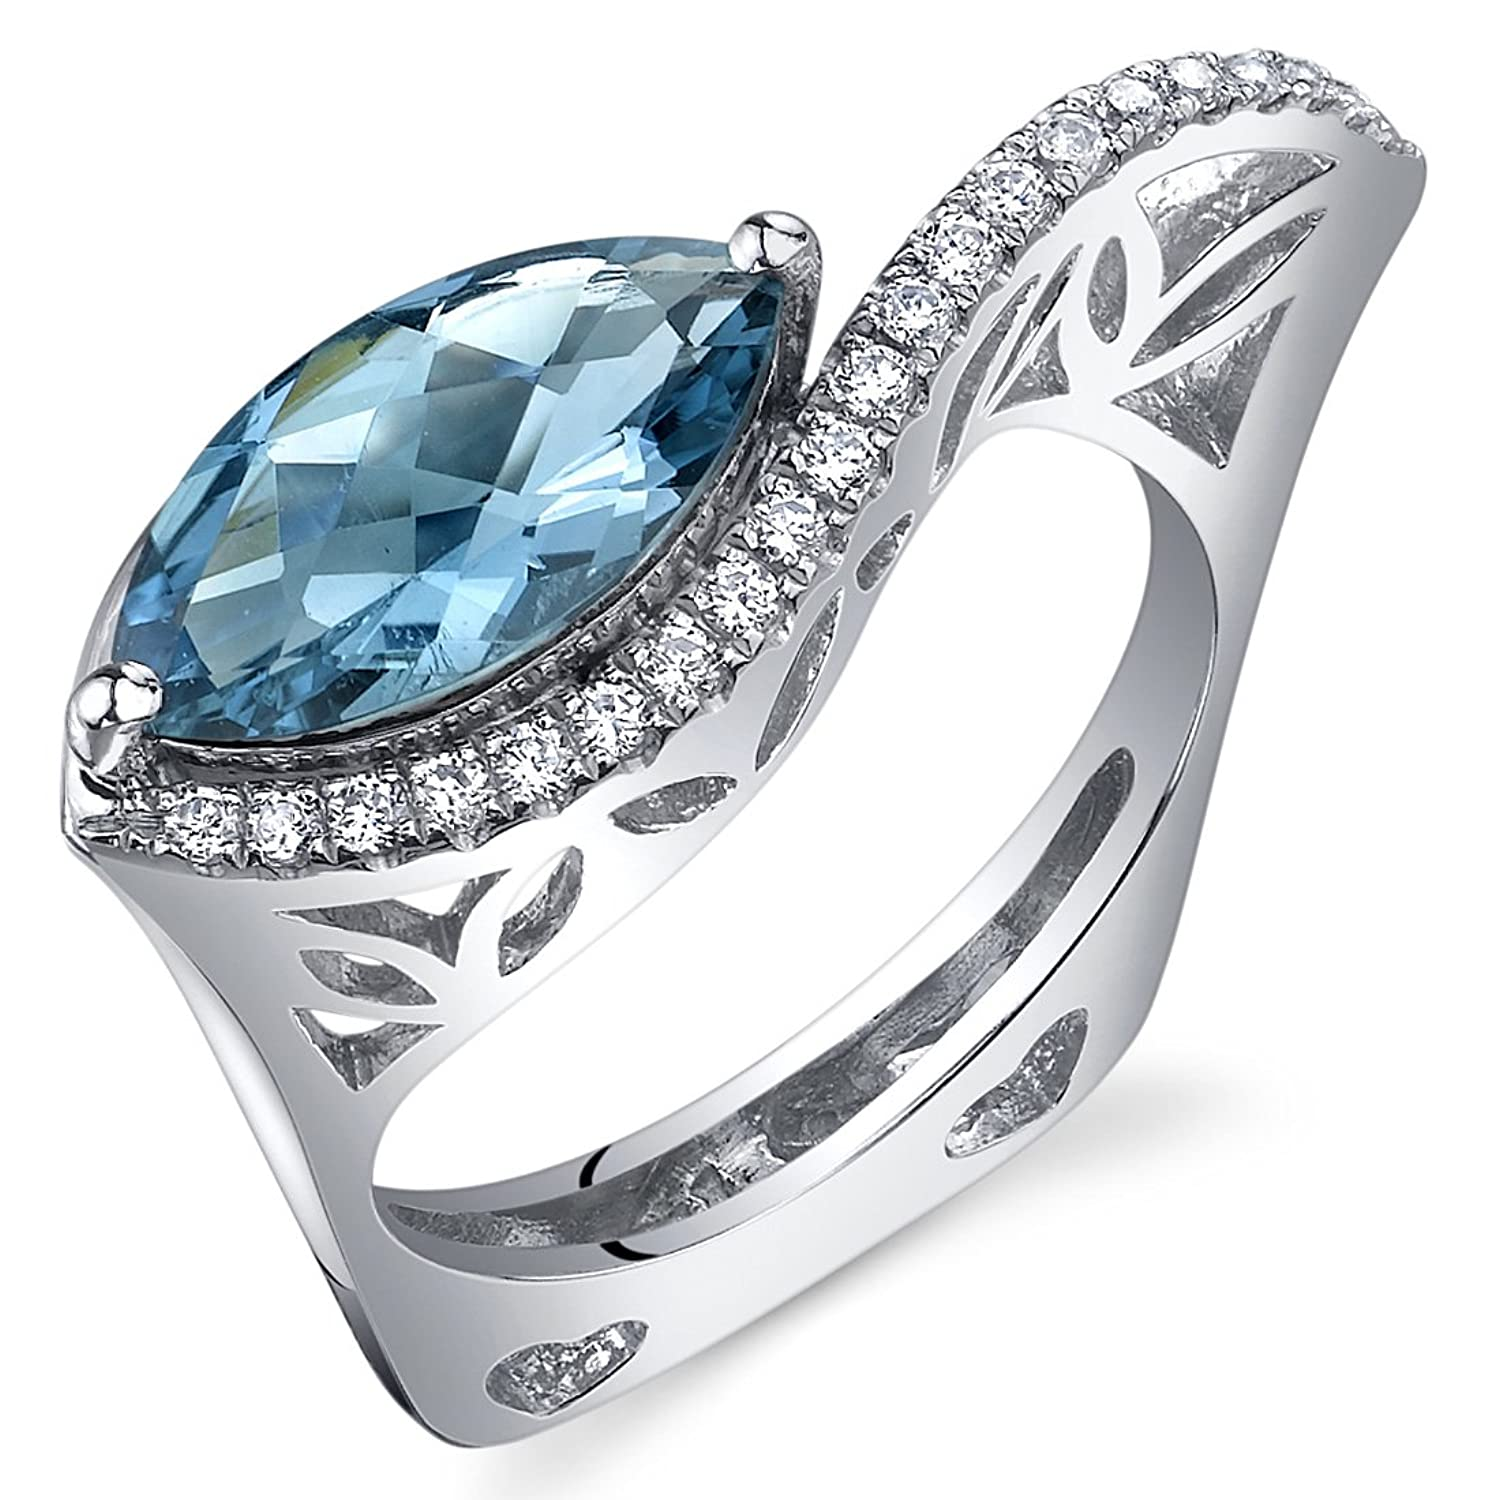 Filigree Style 2.00 Carats Marquise Cut London Blue Topaz Ring in Sterling Silver Rhodium Finish Sizes 5 to 9